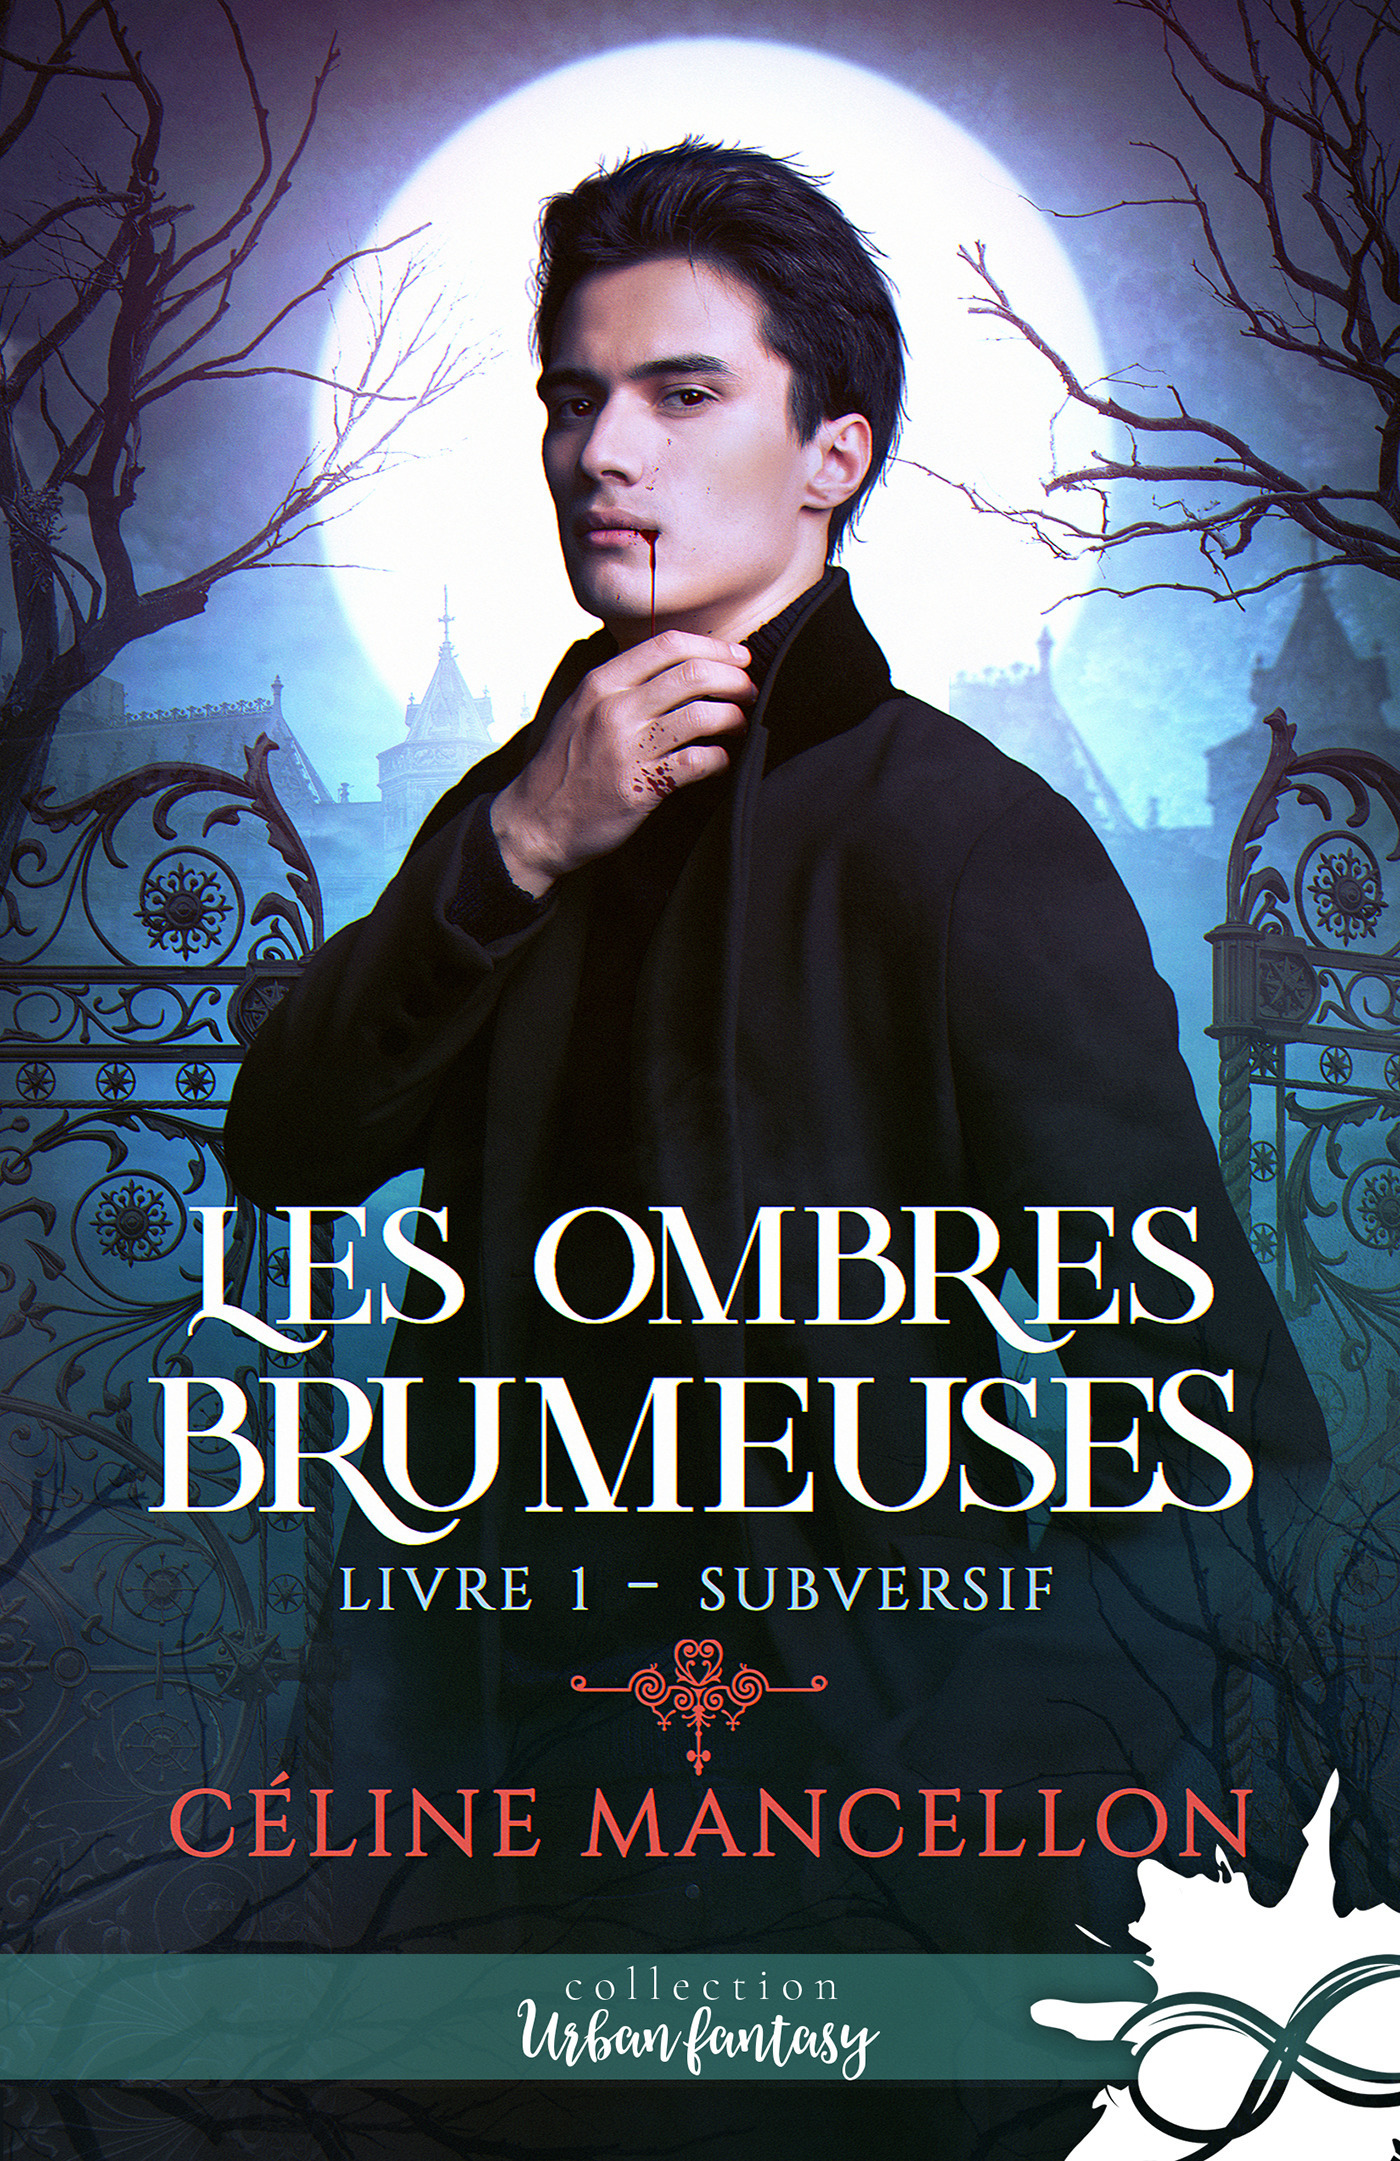 Les ombres brumeuses - t01 - subversif - les ombres brumeuses, t1